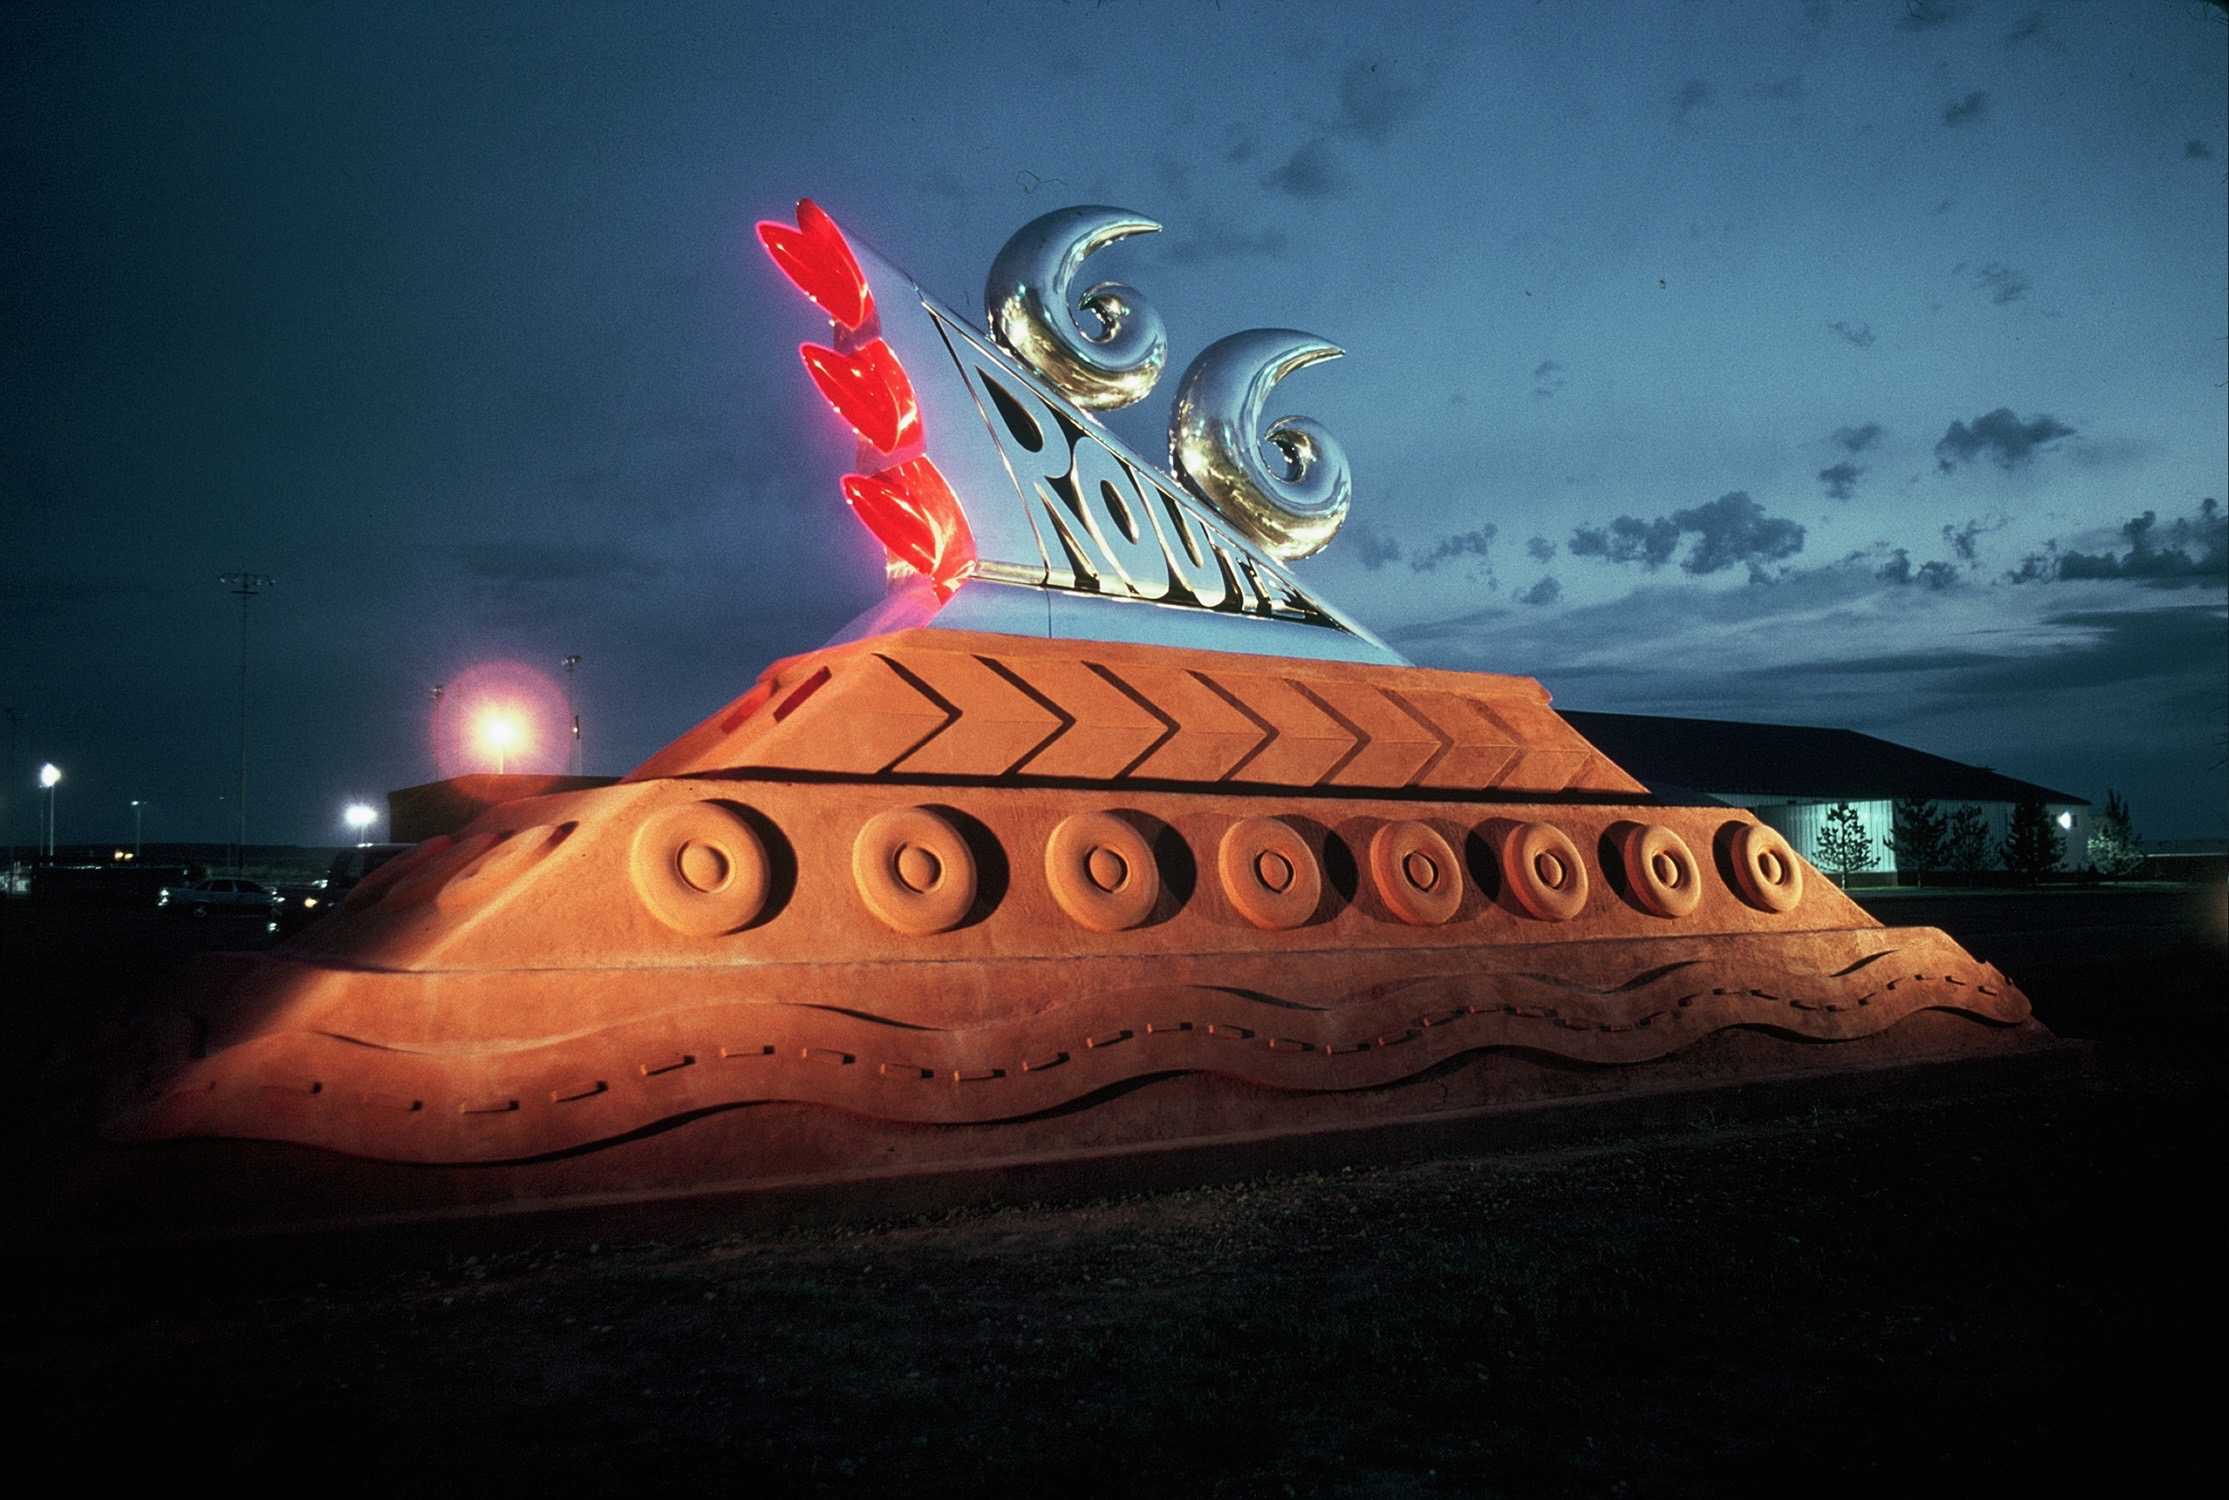 """Thomas Coffin - Route 66 Monument """"Roadside Attraction"""", New Mexico Arts Commission and New Mexico Highway Department - Tucumcari, New Mexico"""